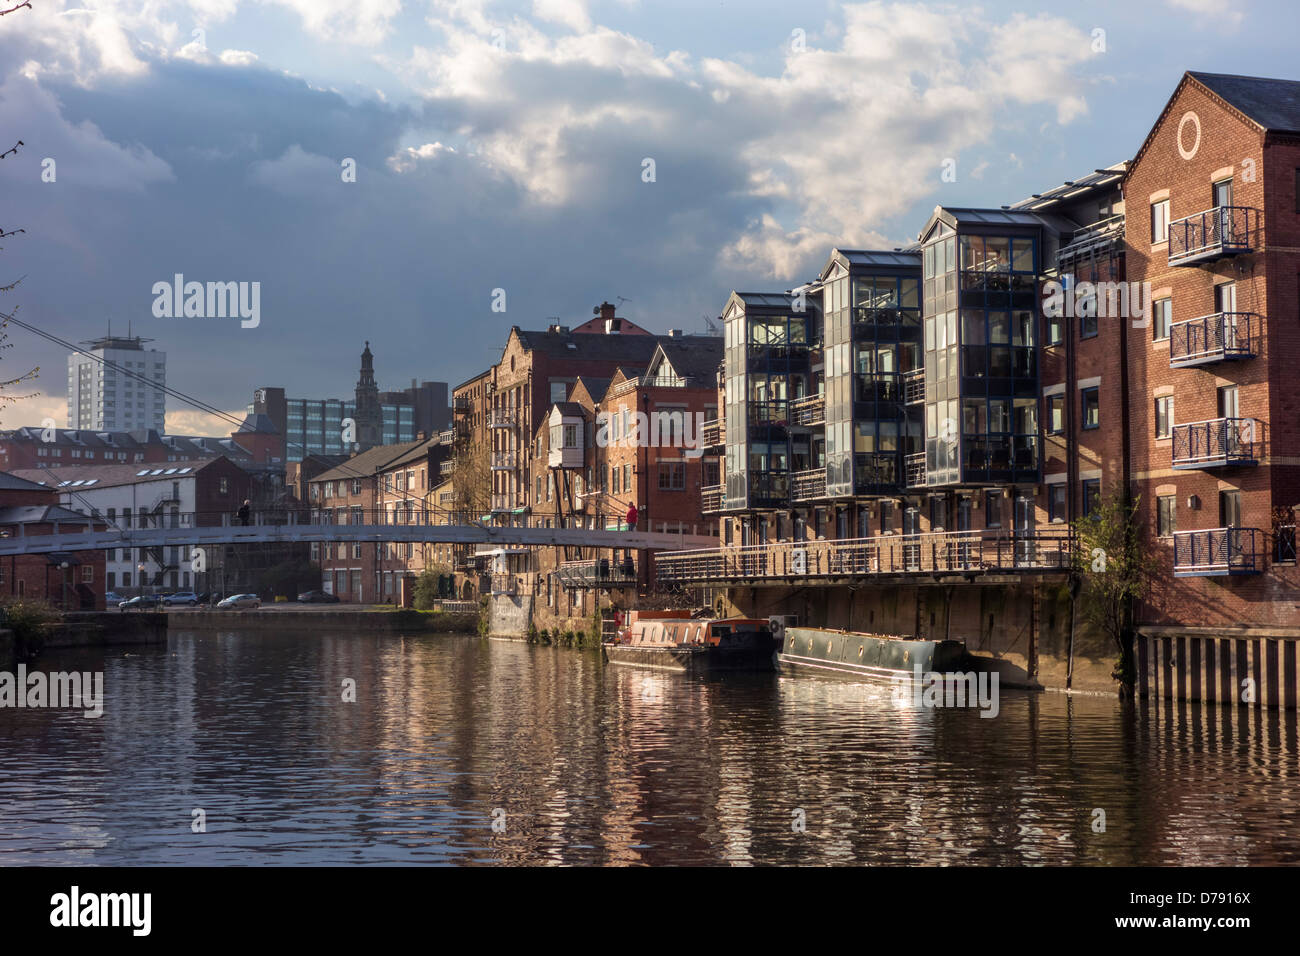 Apartments on the River Aire near the city centre, Leeds, West Yorkshire, UK - Stock Image